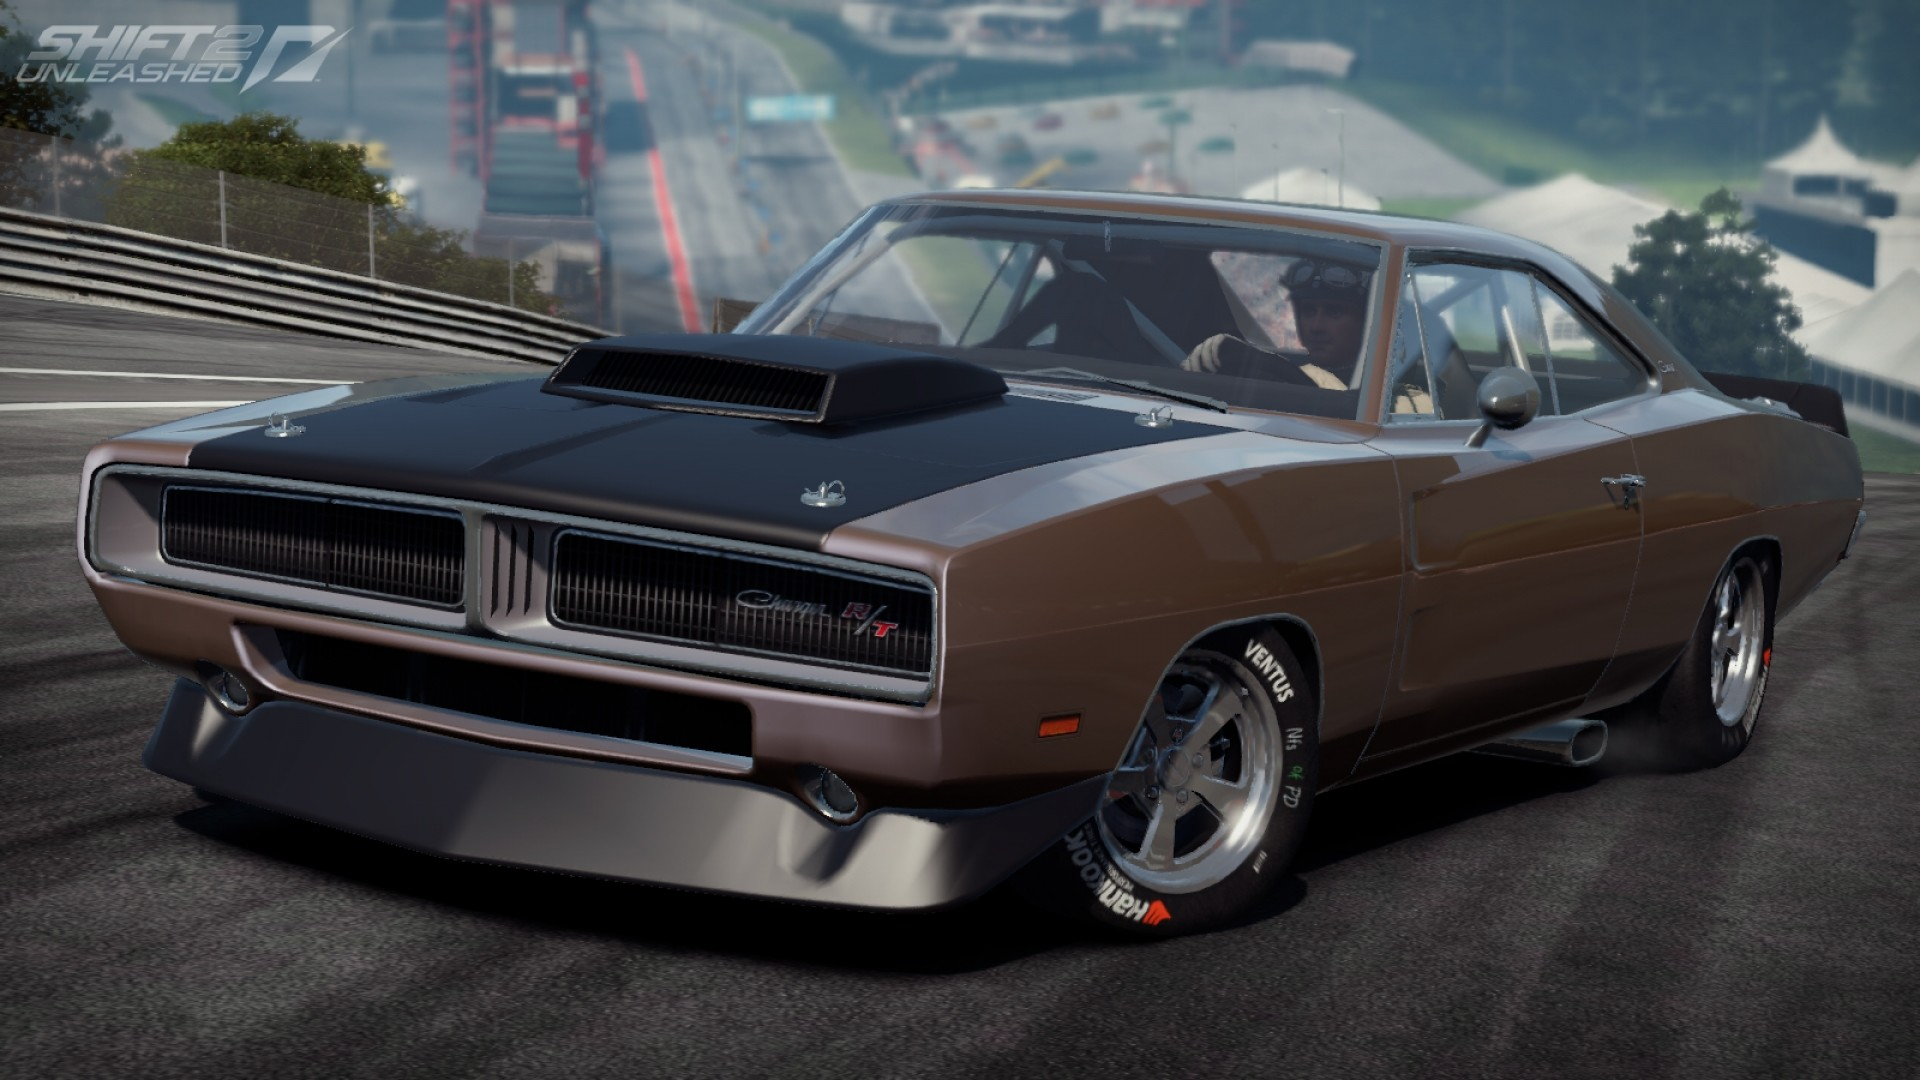 Dodge Charger RT Scat Pack Wallpaper HD Car Wallpapers